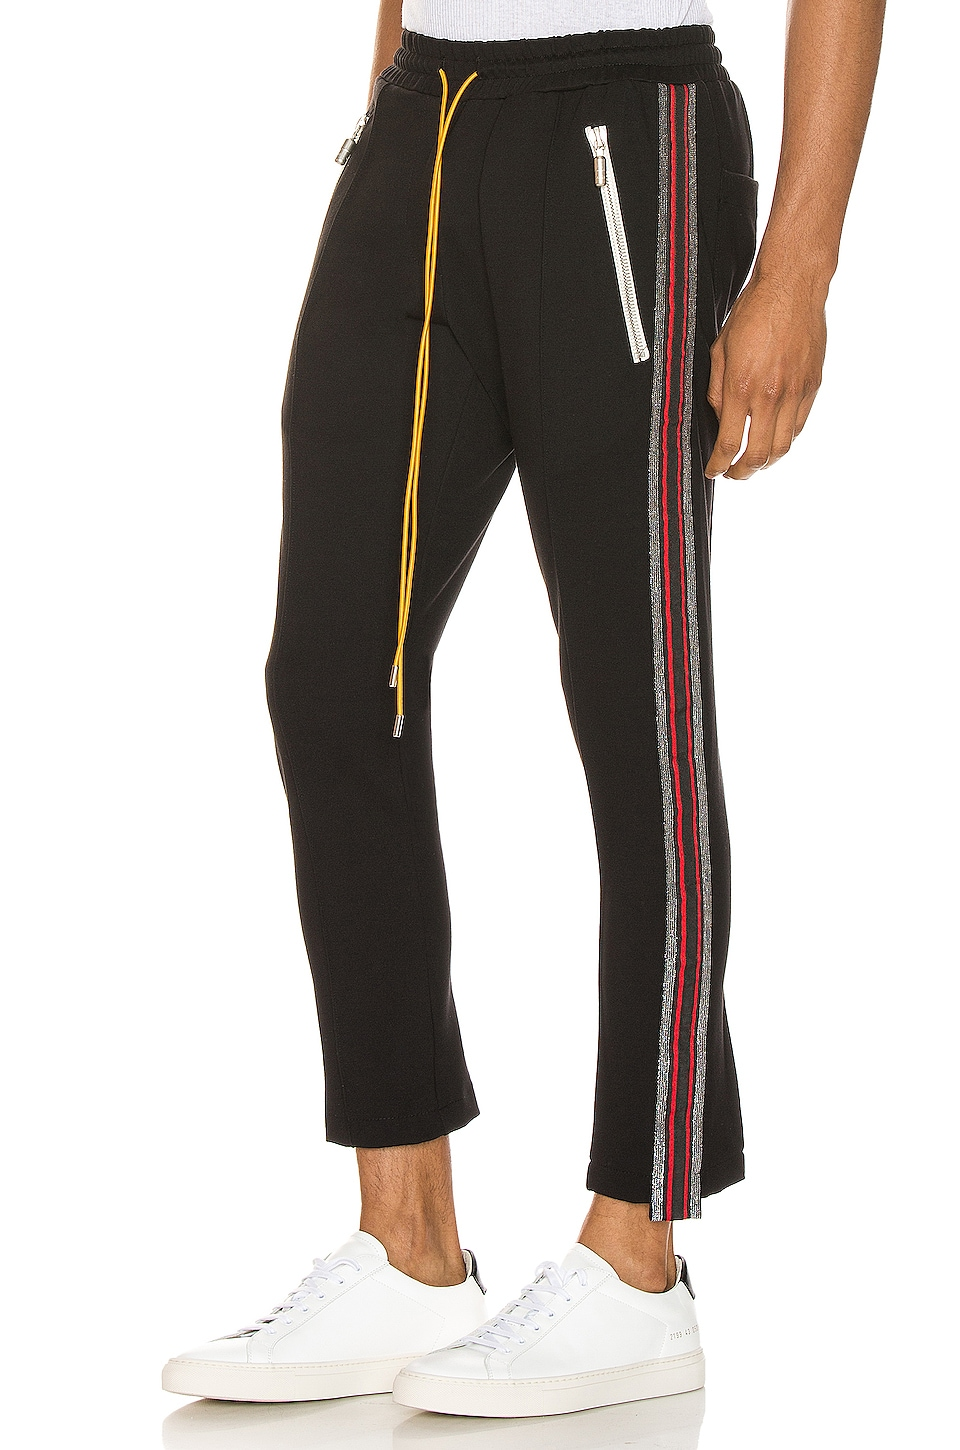 Rhude Traxedo Pant in Black & Red